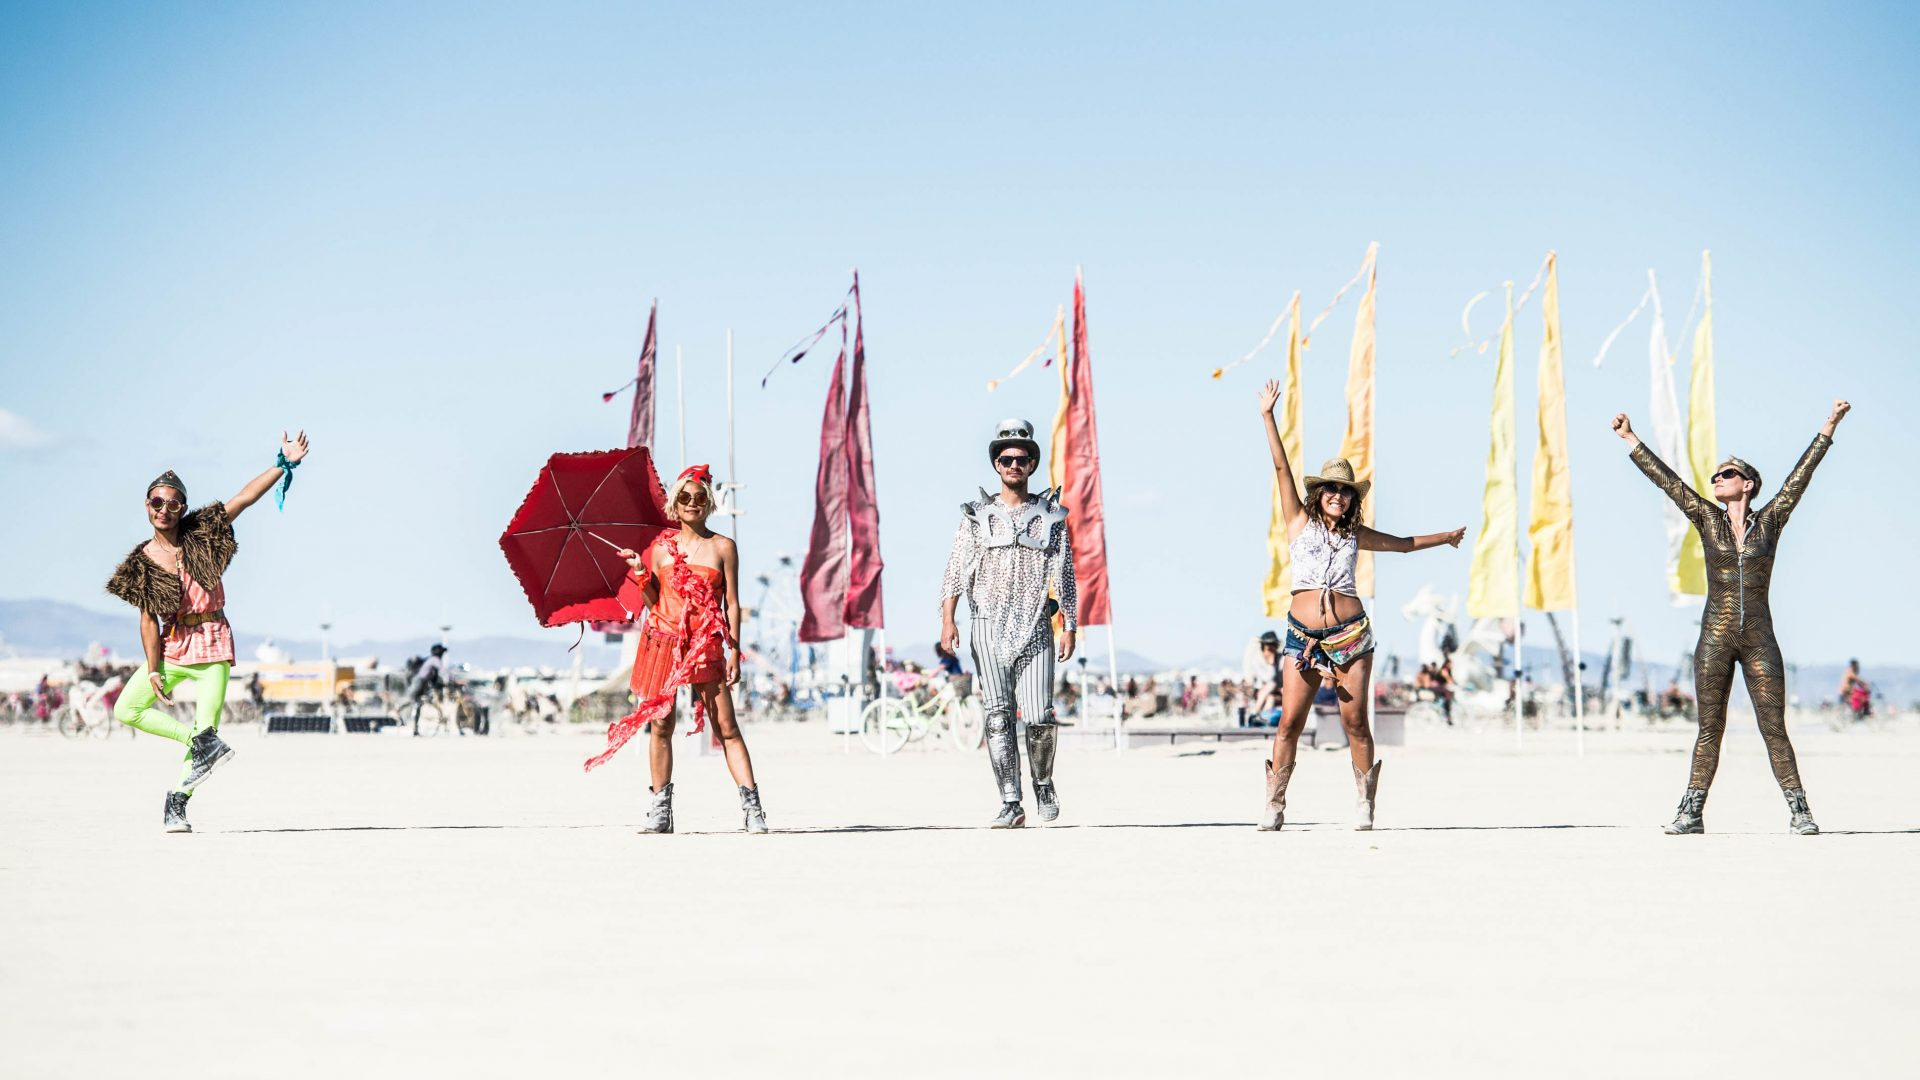 Nicola (far right) and her friends at Burning Man.